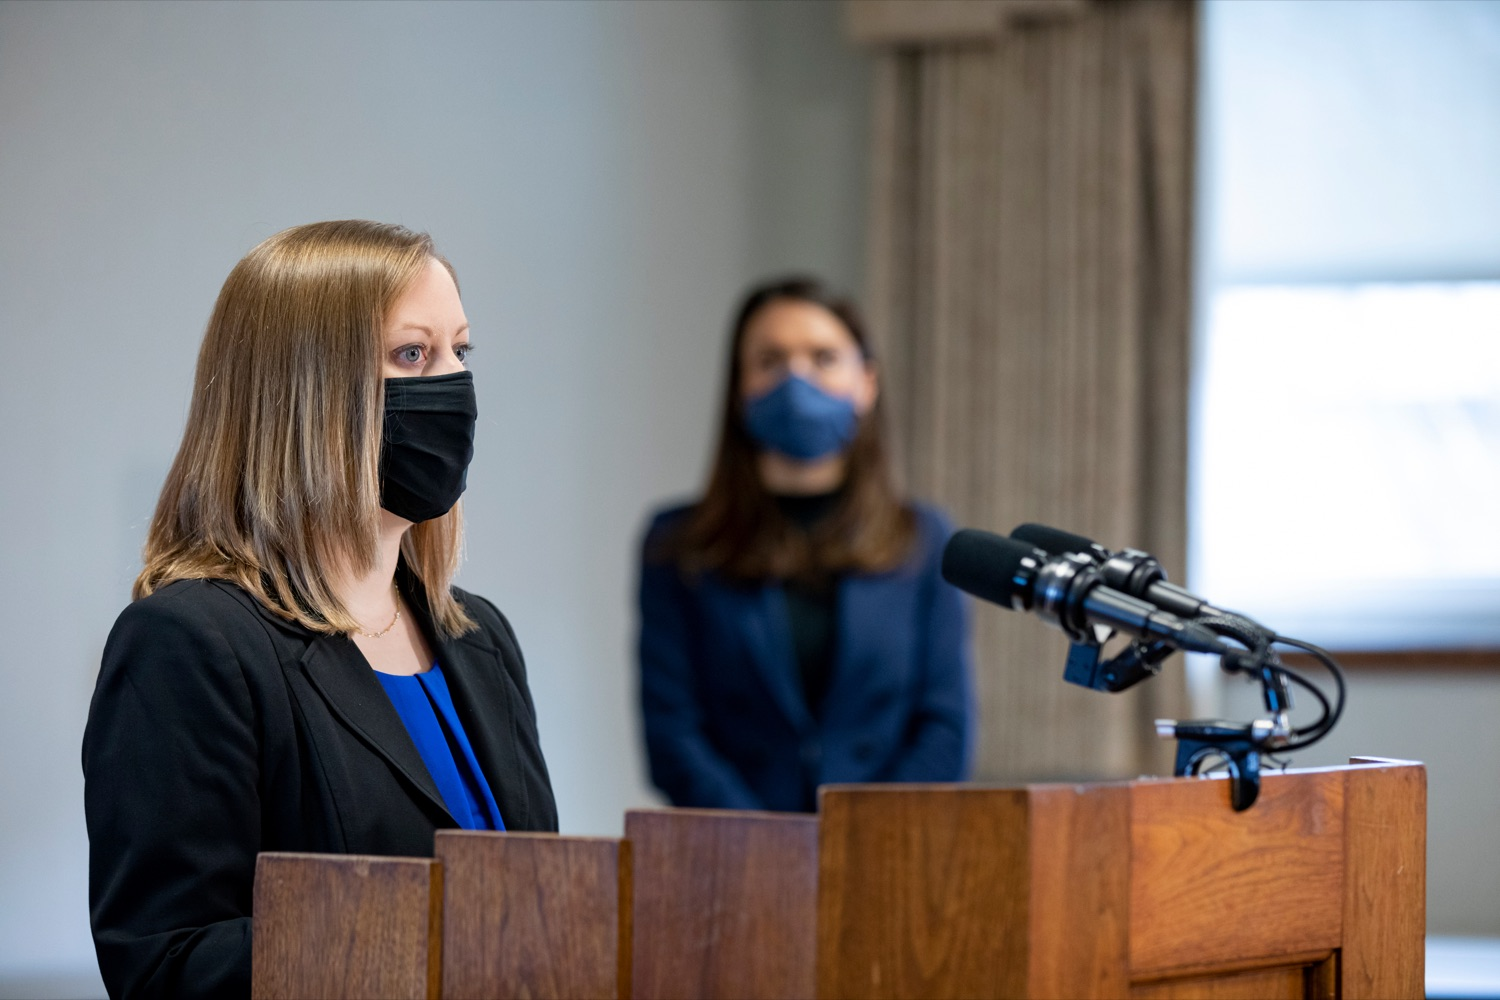 Dr. Leigh Ann DeShong, medical director for Masonic Village in Elizabethtown, speaks during a press conference on Monday, March 29, 2021.